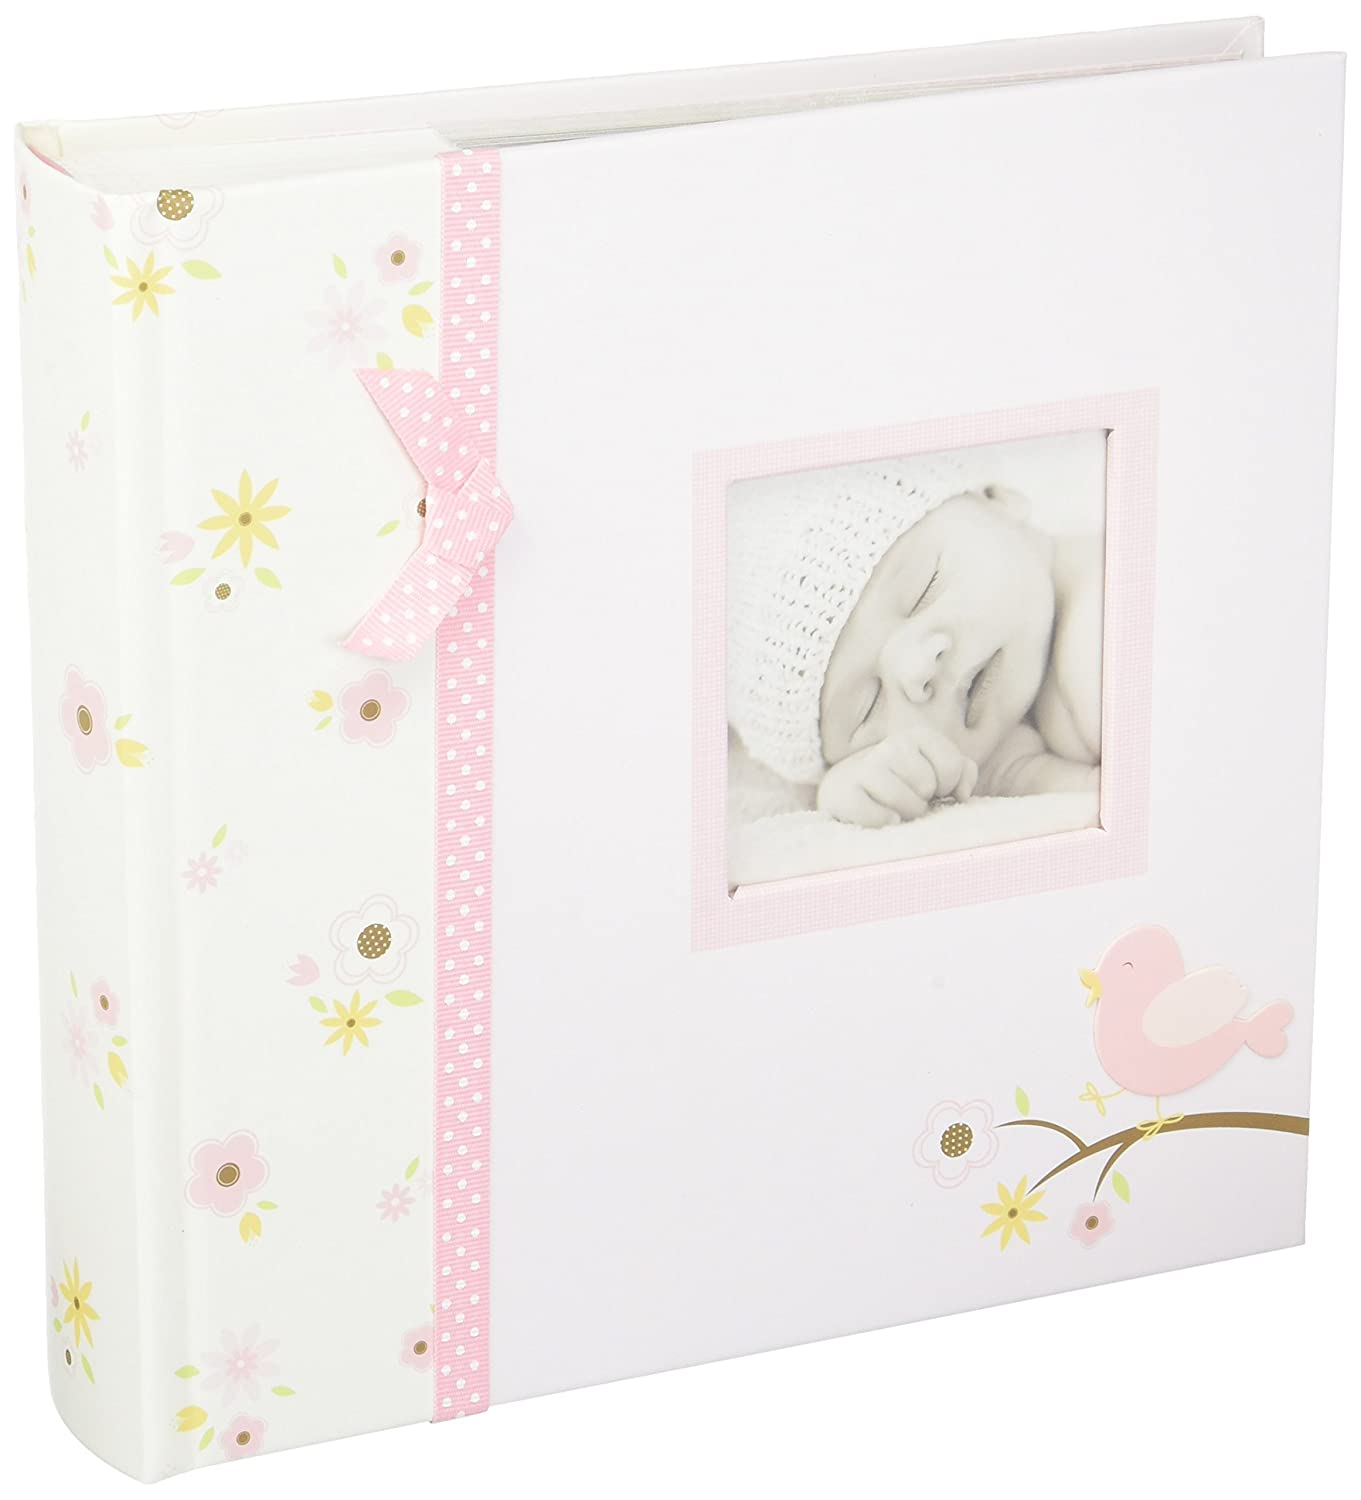 L'il Peach 92162 - Bird Photo Album, pink L'il Peach